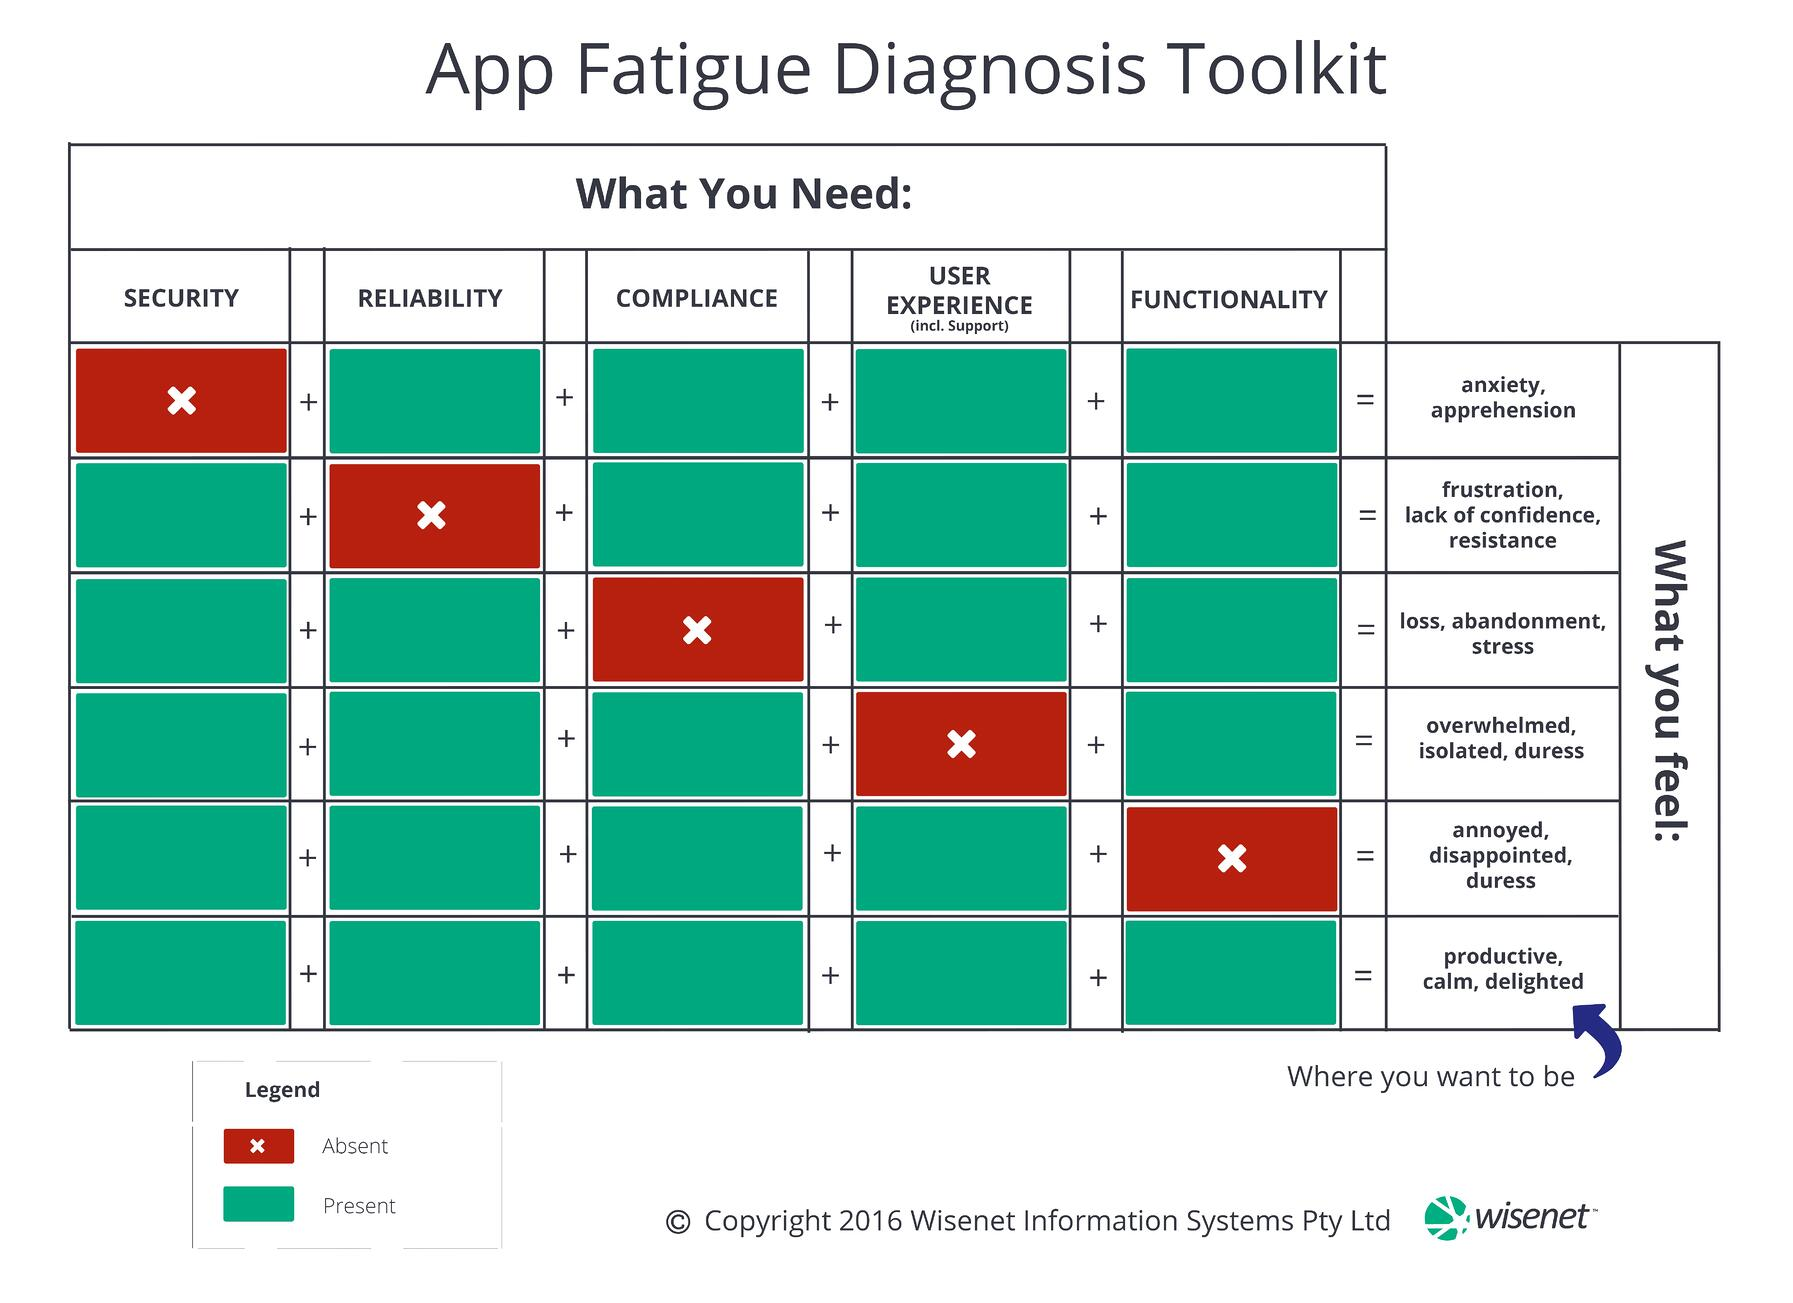 App_Fatigue_Diagnosis_Toolkit_by_Wisenet.jpg